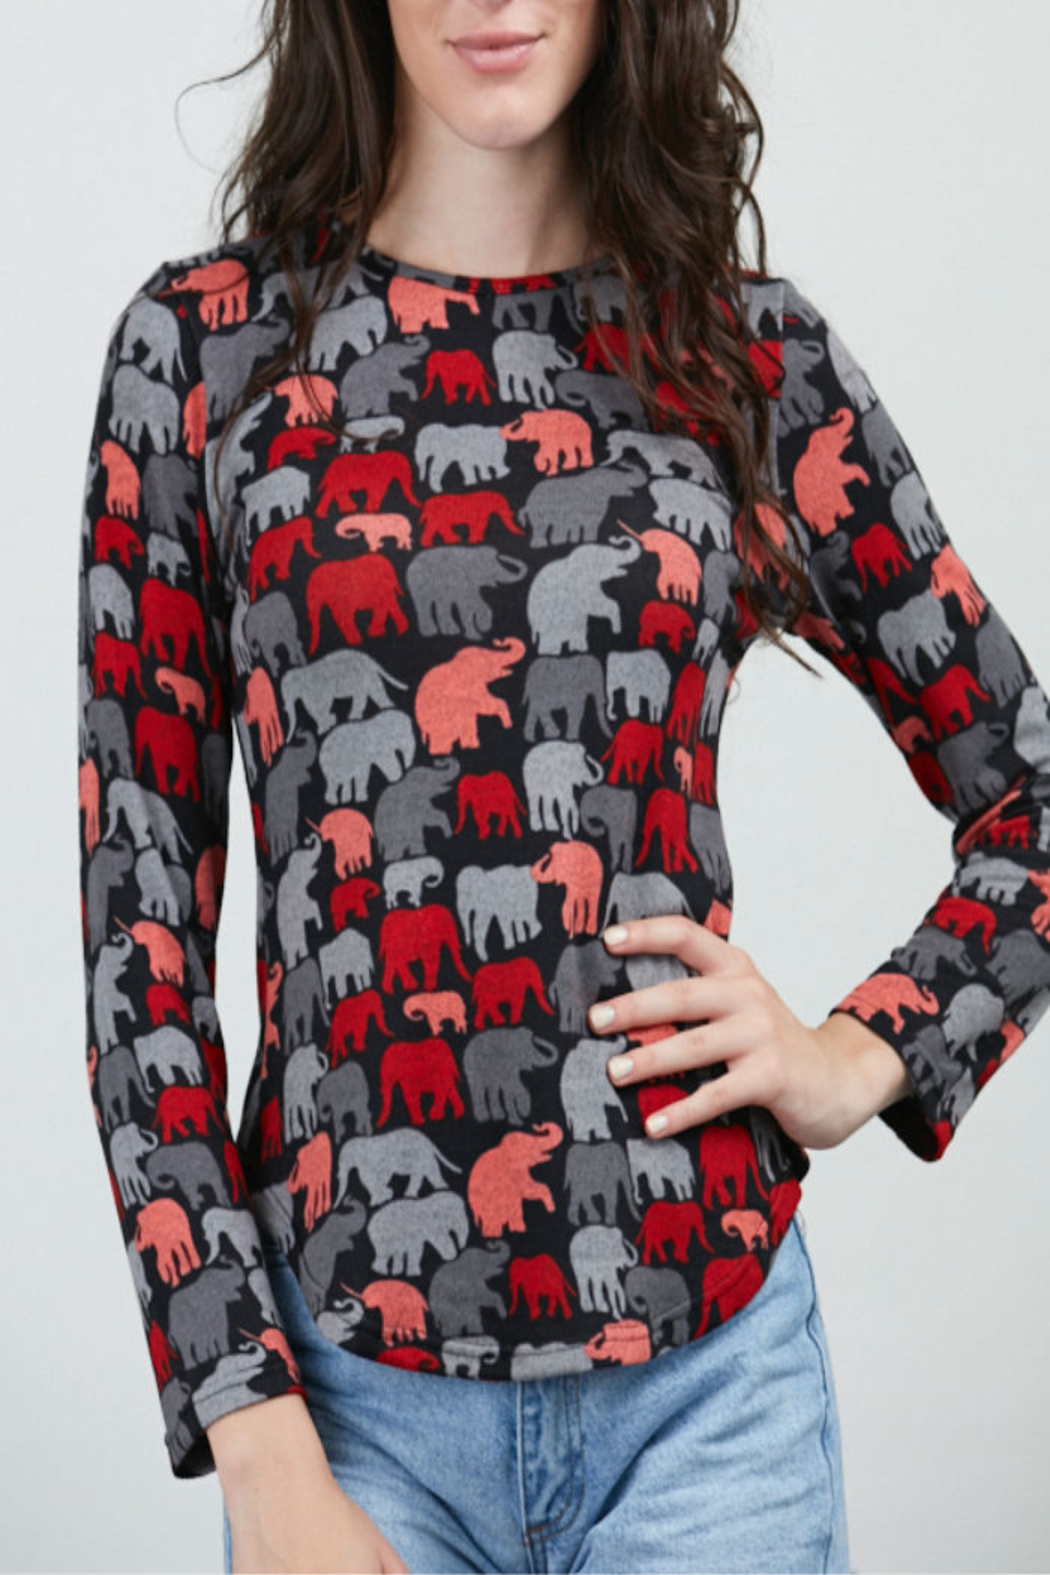 Patricia's Presents Elephant Print Sweater - Main Image